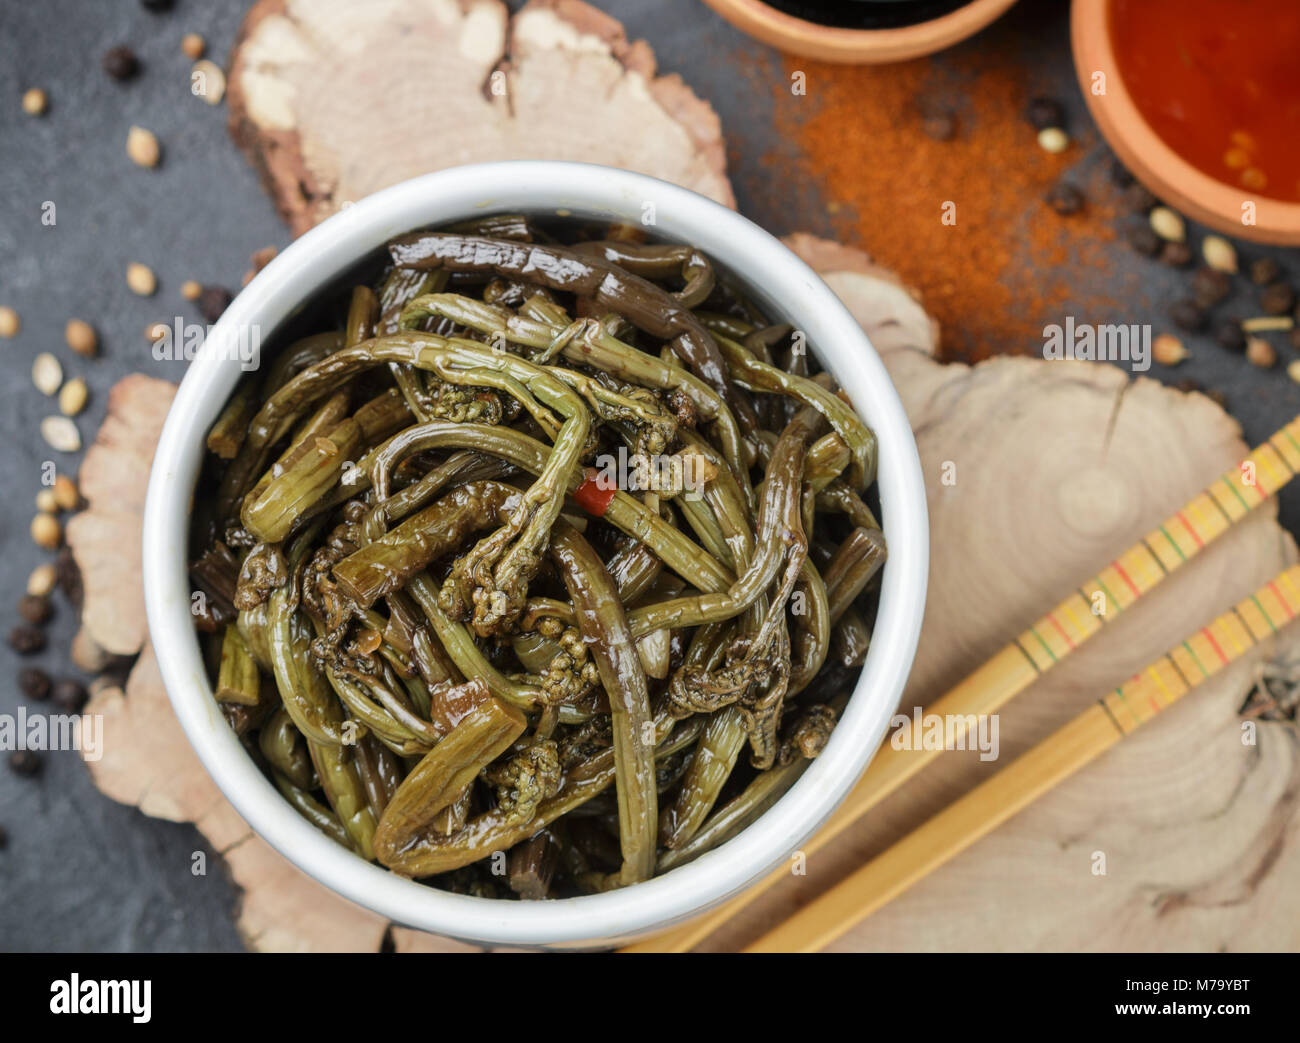 Spicy salad of fern with onion, garlic, soy sauce and spices. Dish Eastern and Asian cuisine. Selective focus - Stock Image